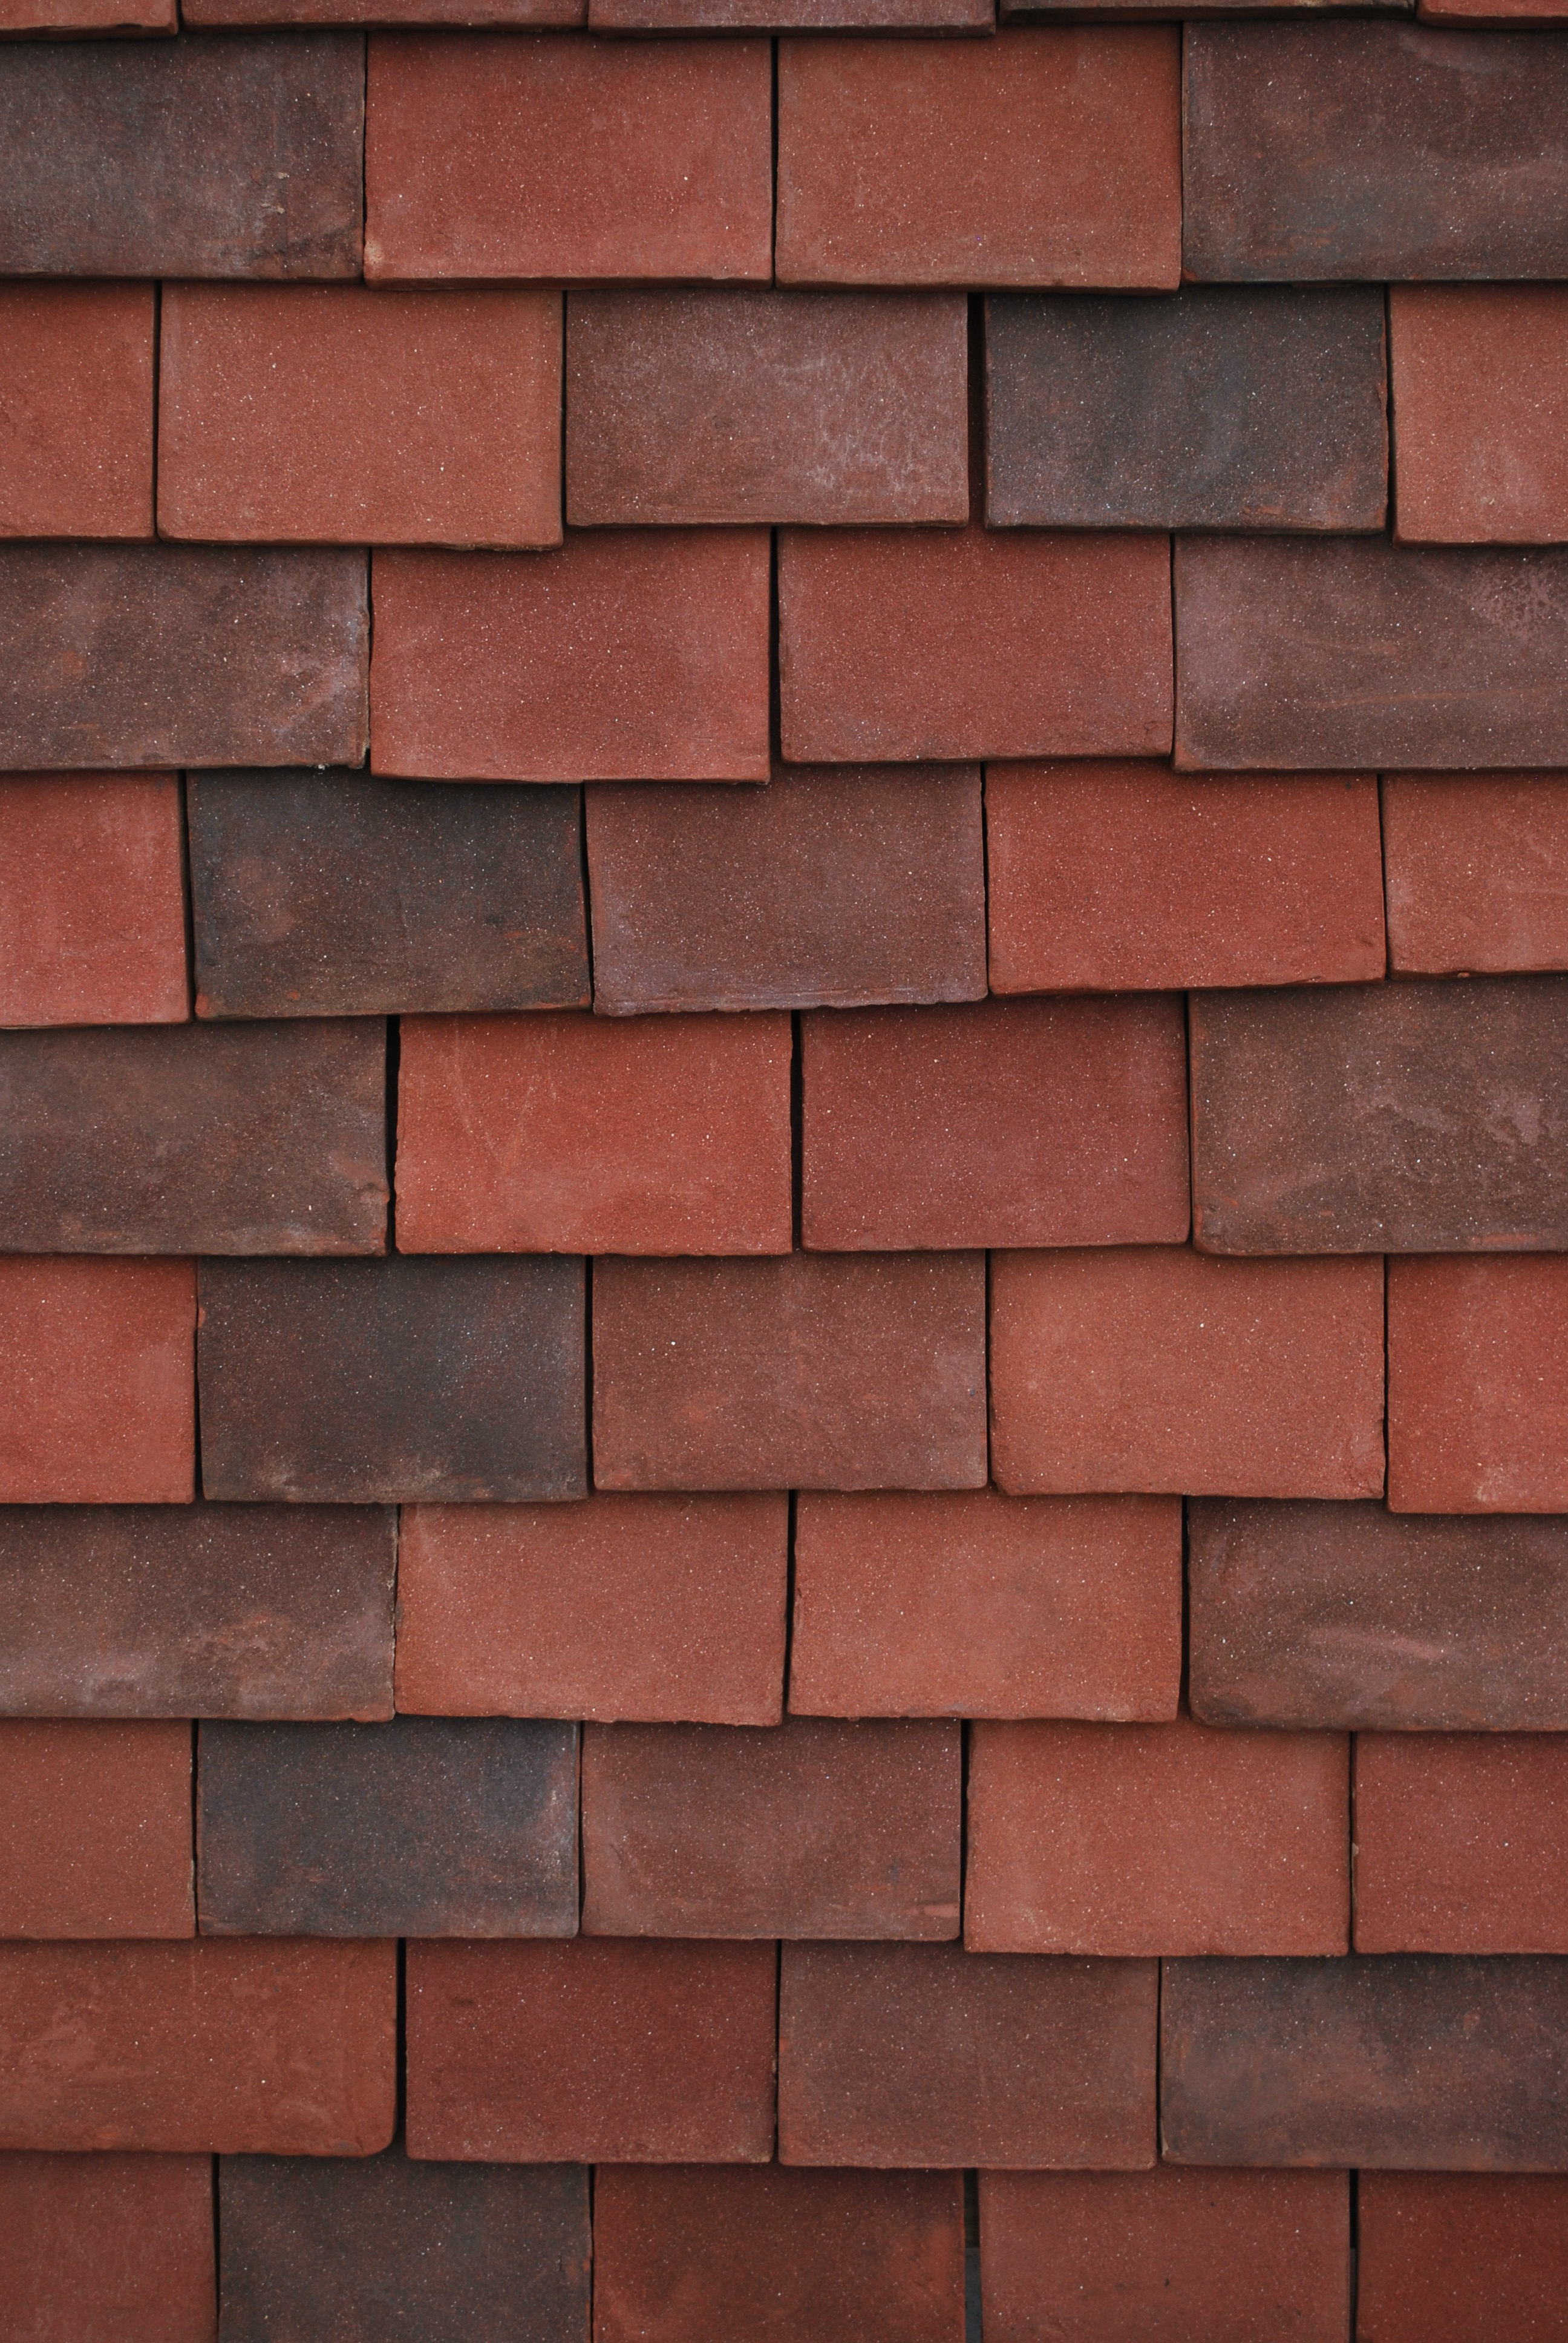 Traditional Handmade Clay Roof Tiles By Sahtas Archello